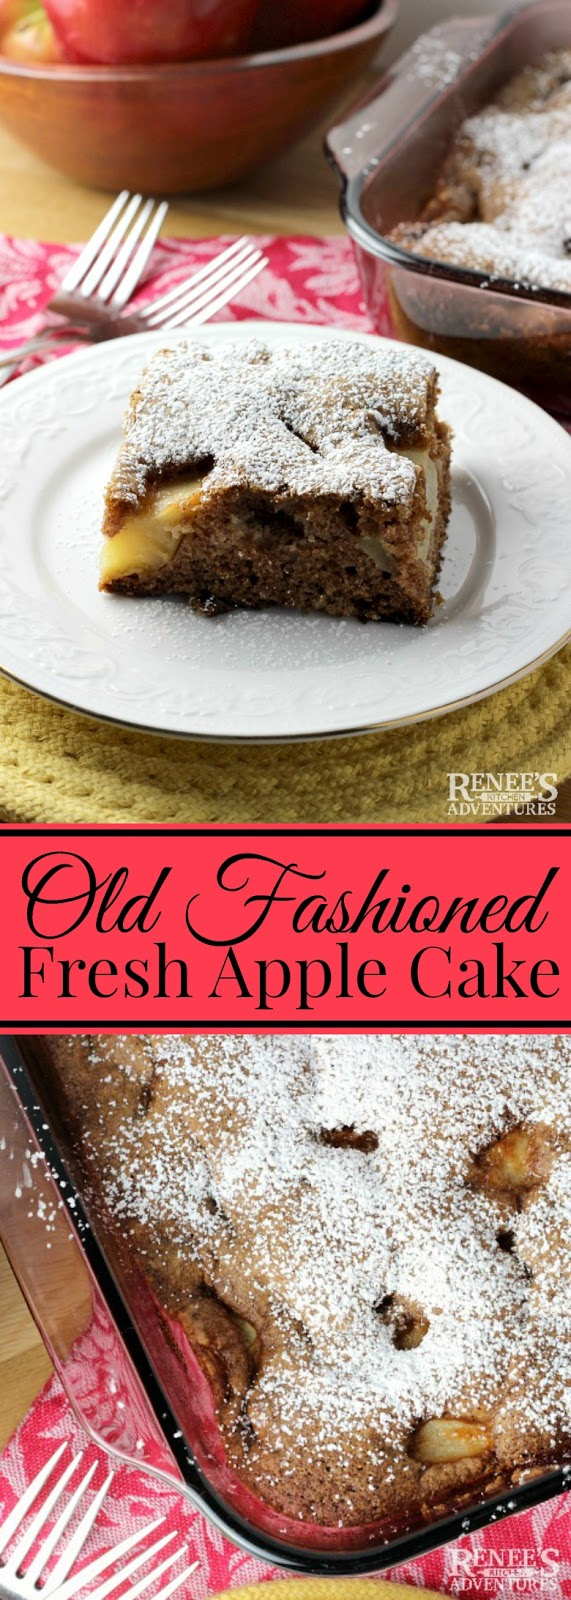 Old Fashioned Fresh Apple Cake | Renee's Kitchen Adventures - Easy dessert recipe for an old fashioned fresh apple cake made in one bowl. Perfect taste of Fall and way to showcase your fresh apples of the season! #applecake #applerecipe #easyrecipe #easyapplecakerecipe #honeycrispapplerecipe #fugiapplerecipe #dessertrecipewithapples #appledessert